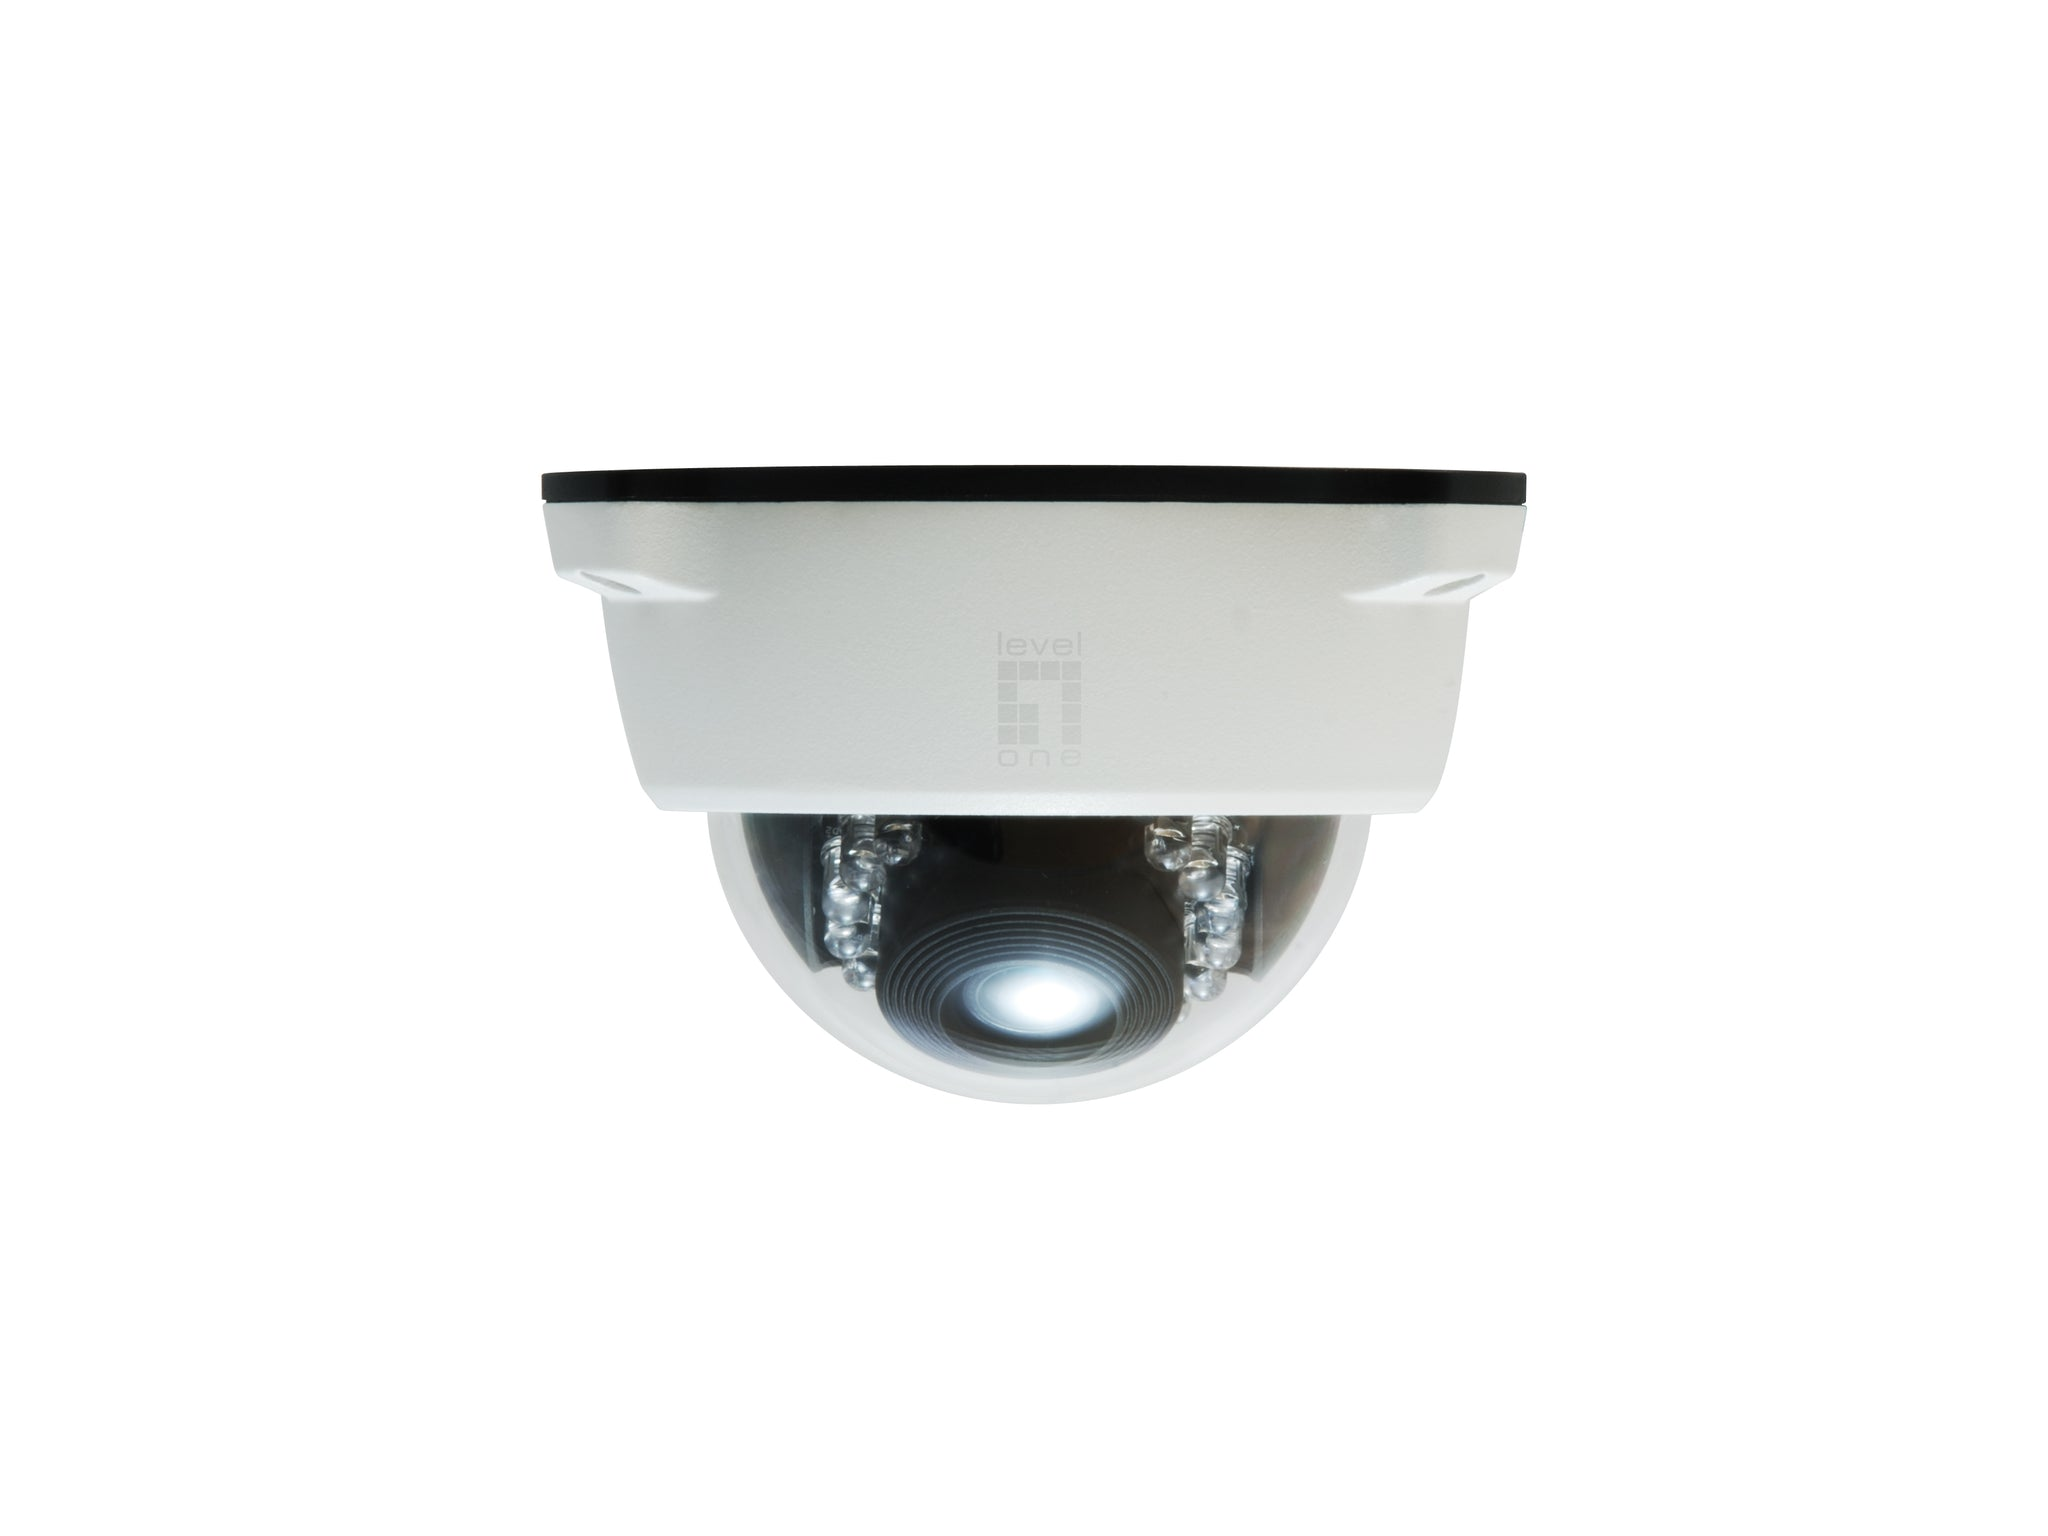 FCS-3102 2-MEGAPIXEL OUTDOOR FIXED DOME NETWORK CAMERA